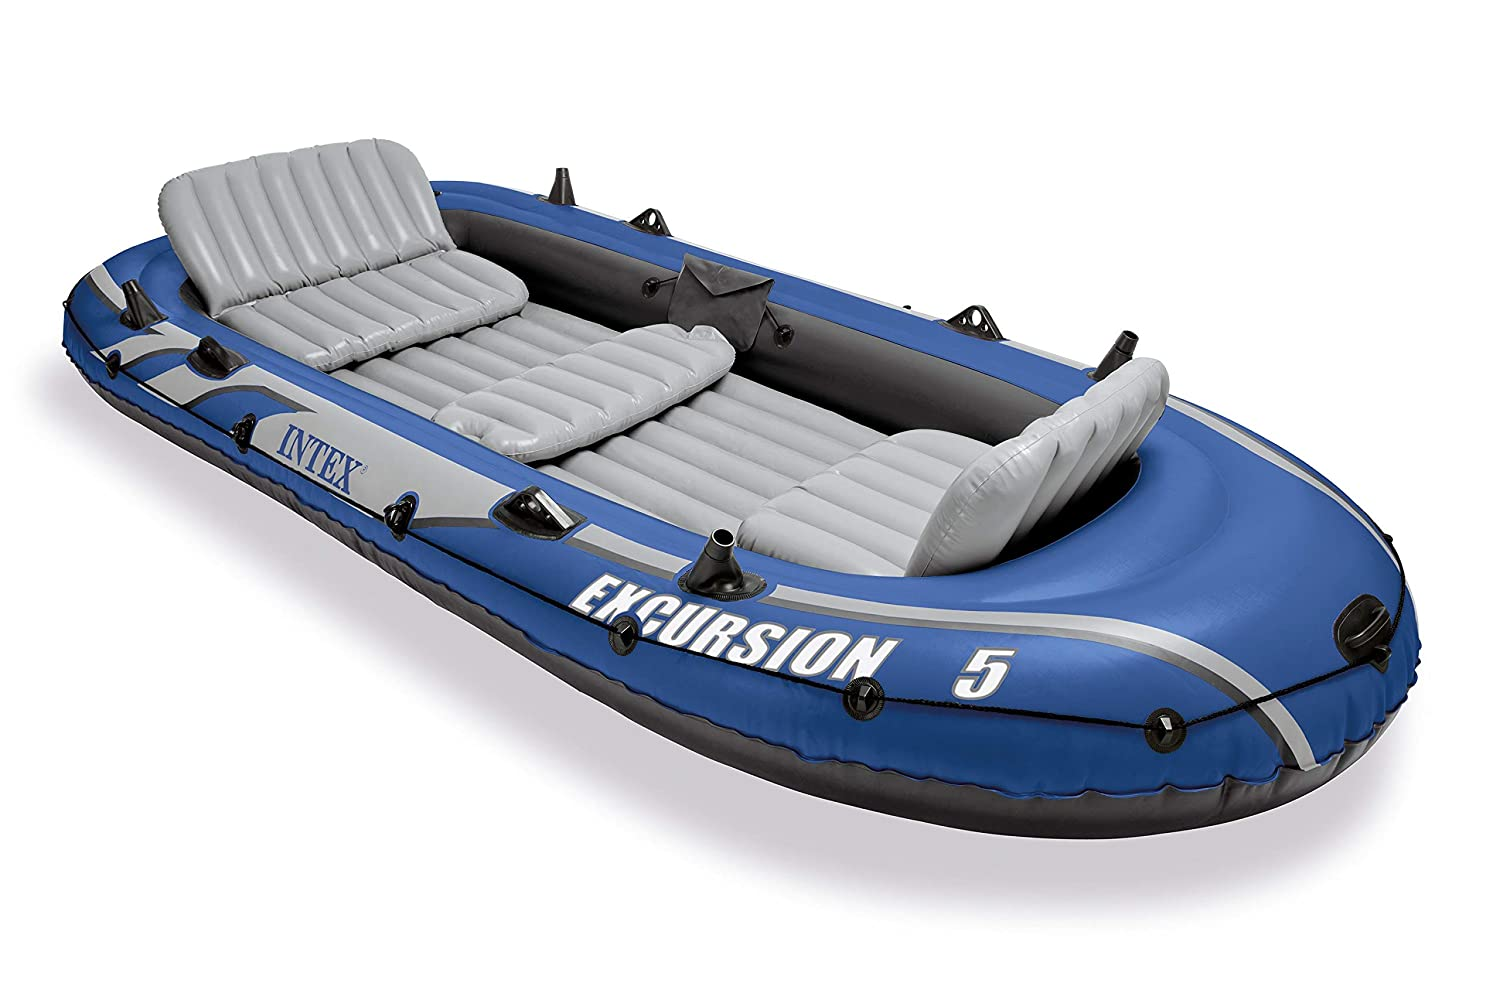 Intex Excursion 5 Person Inflatable Fishing Boat Set with 2 Oars, Air Pump & Bag